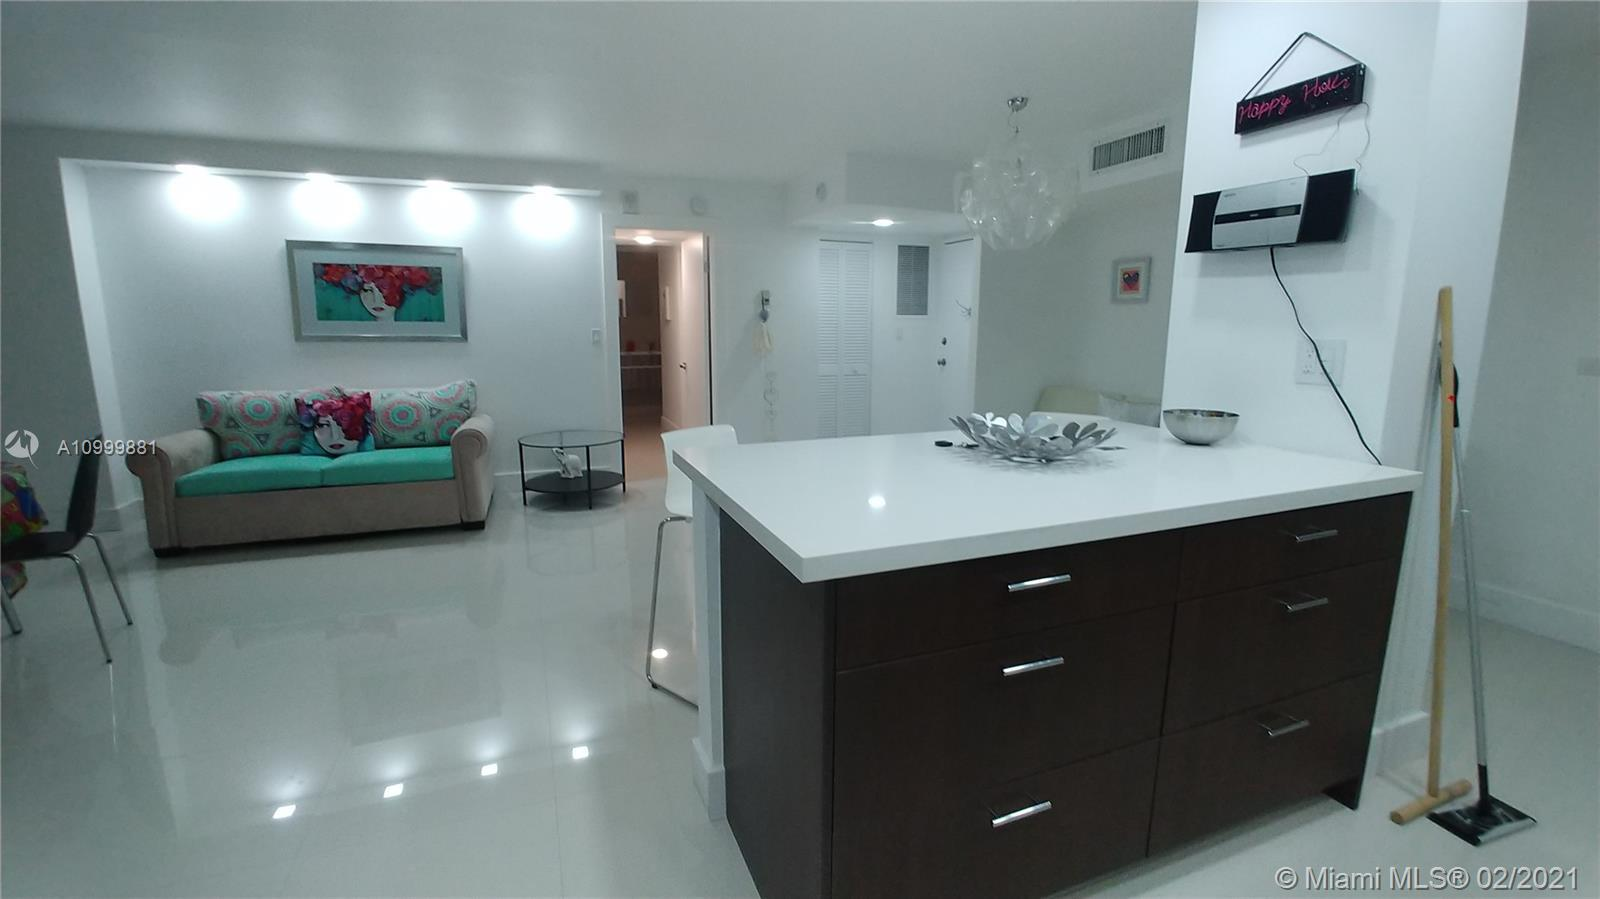 GREAT LOCATION IN THE HEART OF MIAMI BEACH, BEACH ACCESS AND BEACH VIEW, FULLY RENOVATED, WITH FURNI